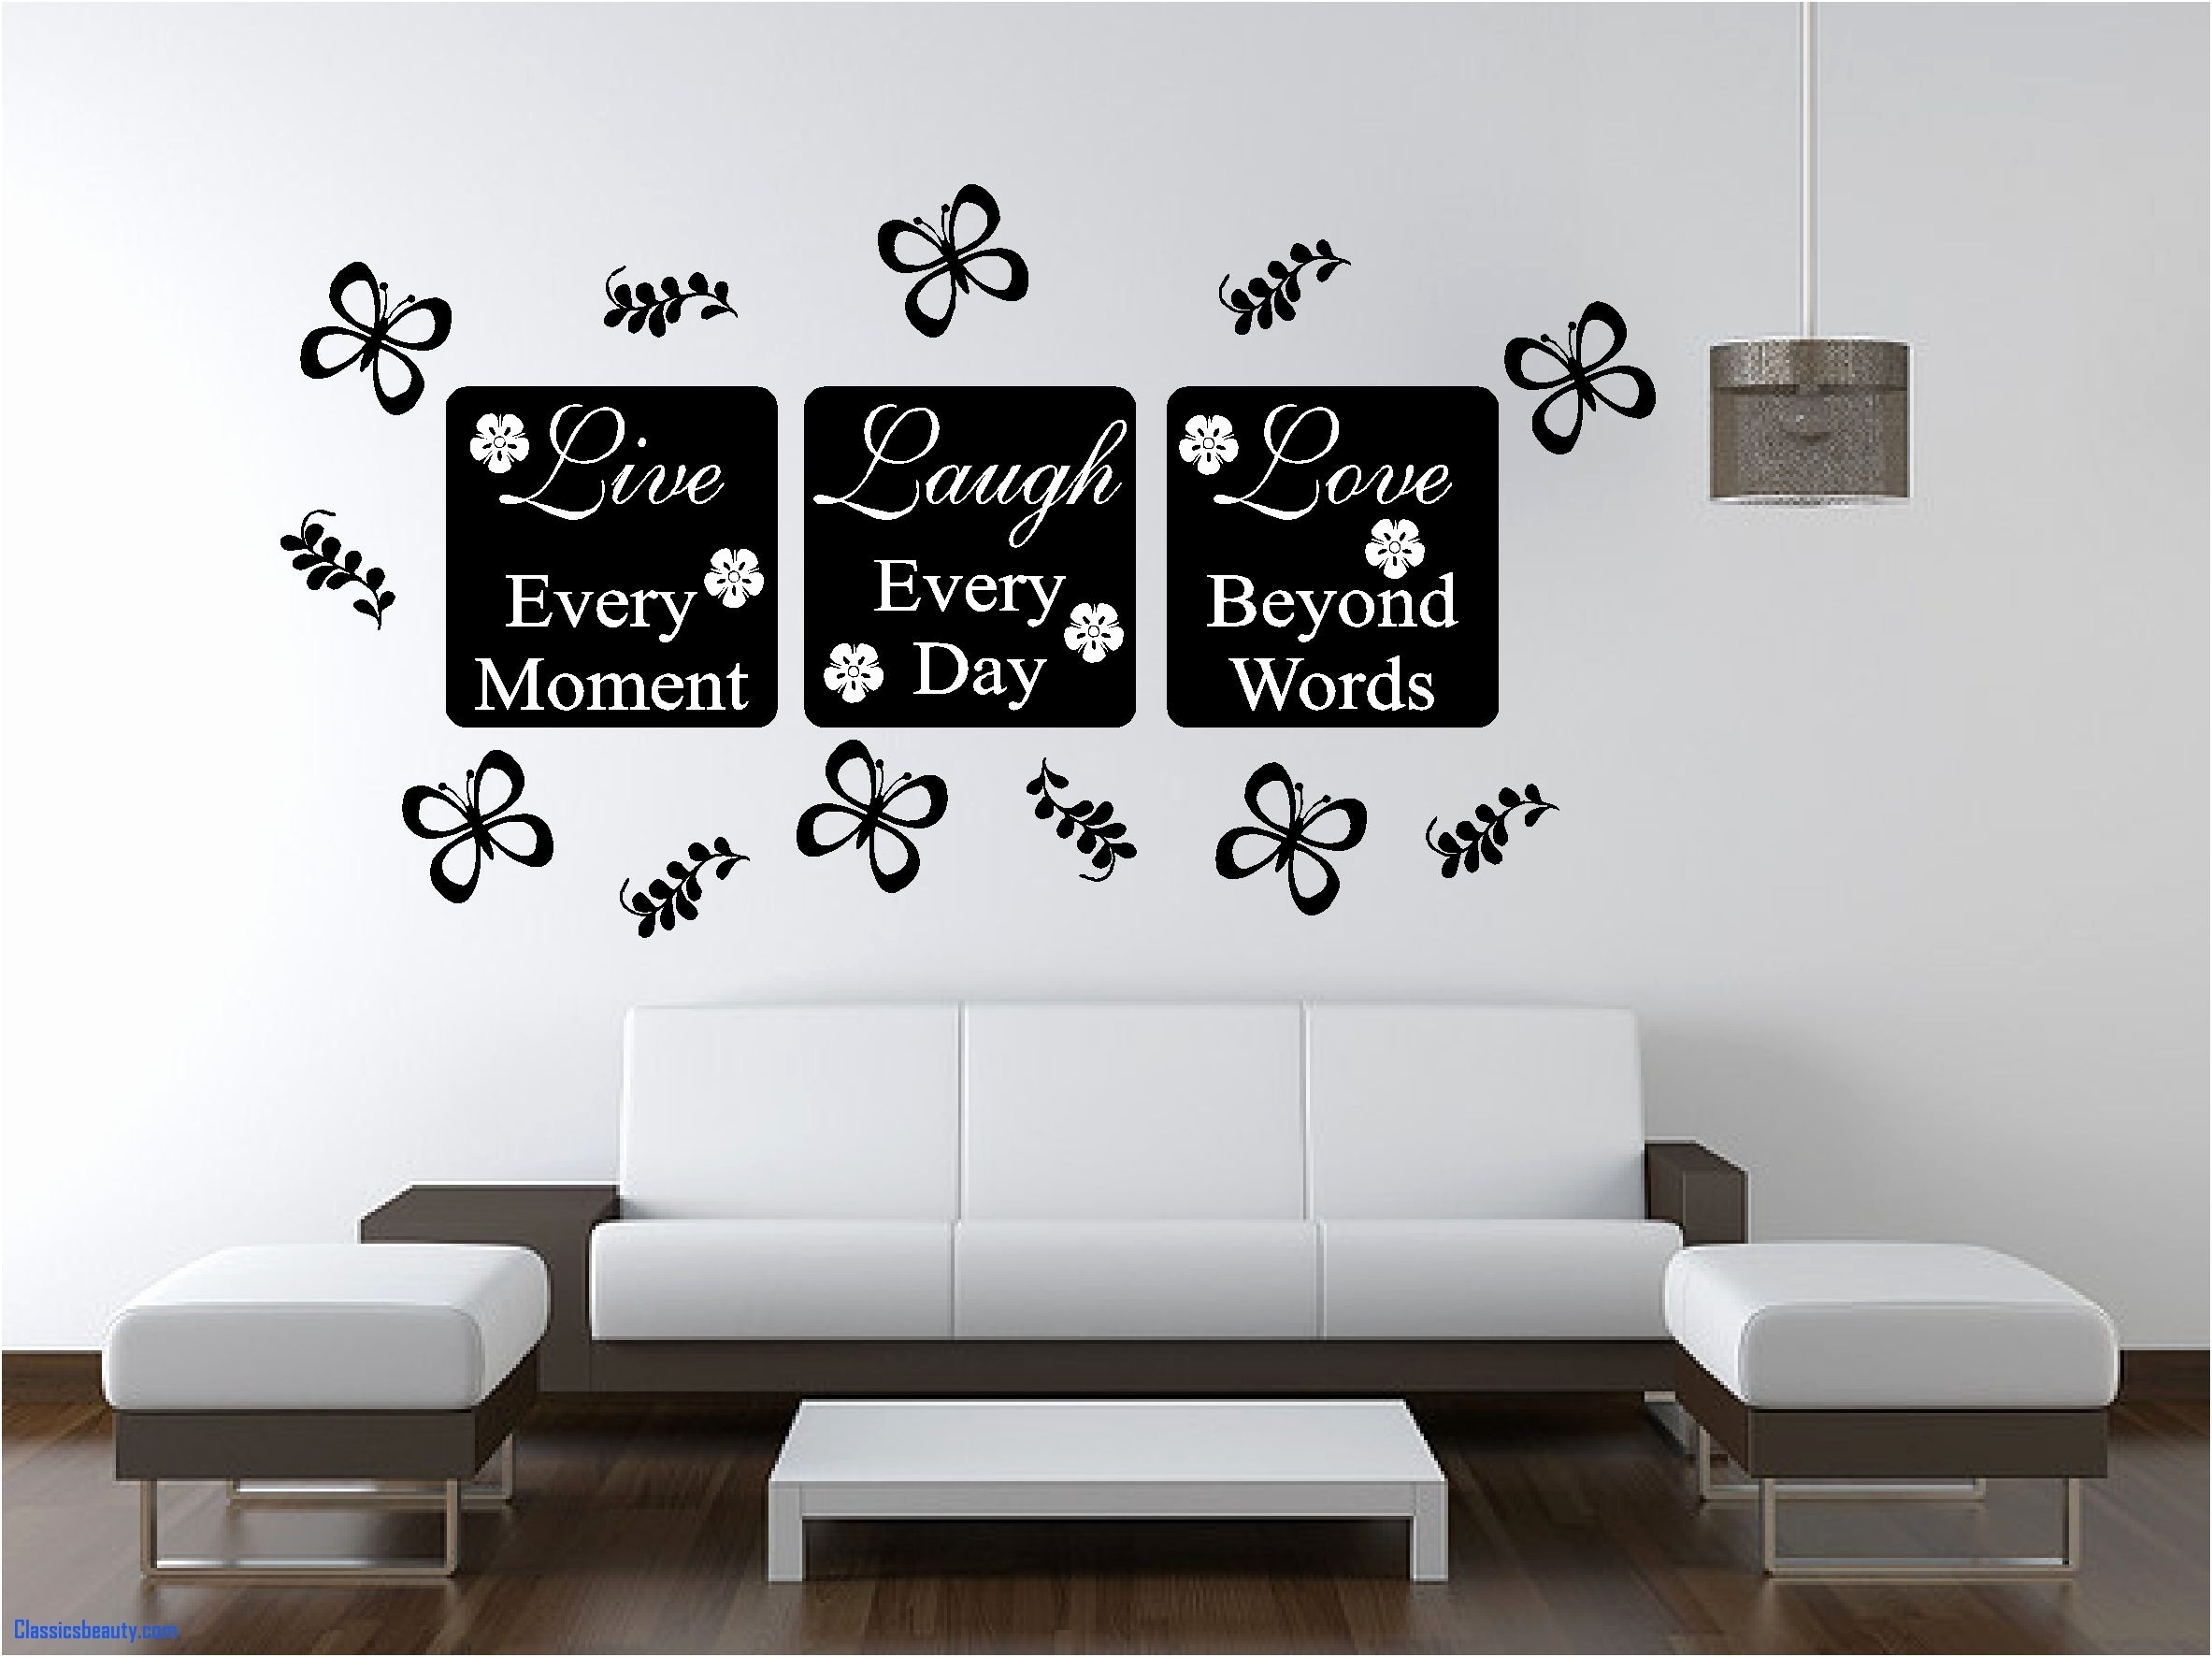 Bedroom Wall Art Fresh Living Room Wall Art Ideas Inspirational Throughout Current Wall Art For Bedroom (View 5 of 15)